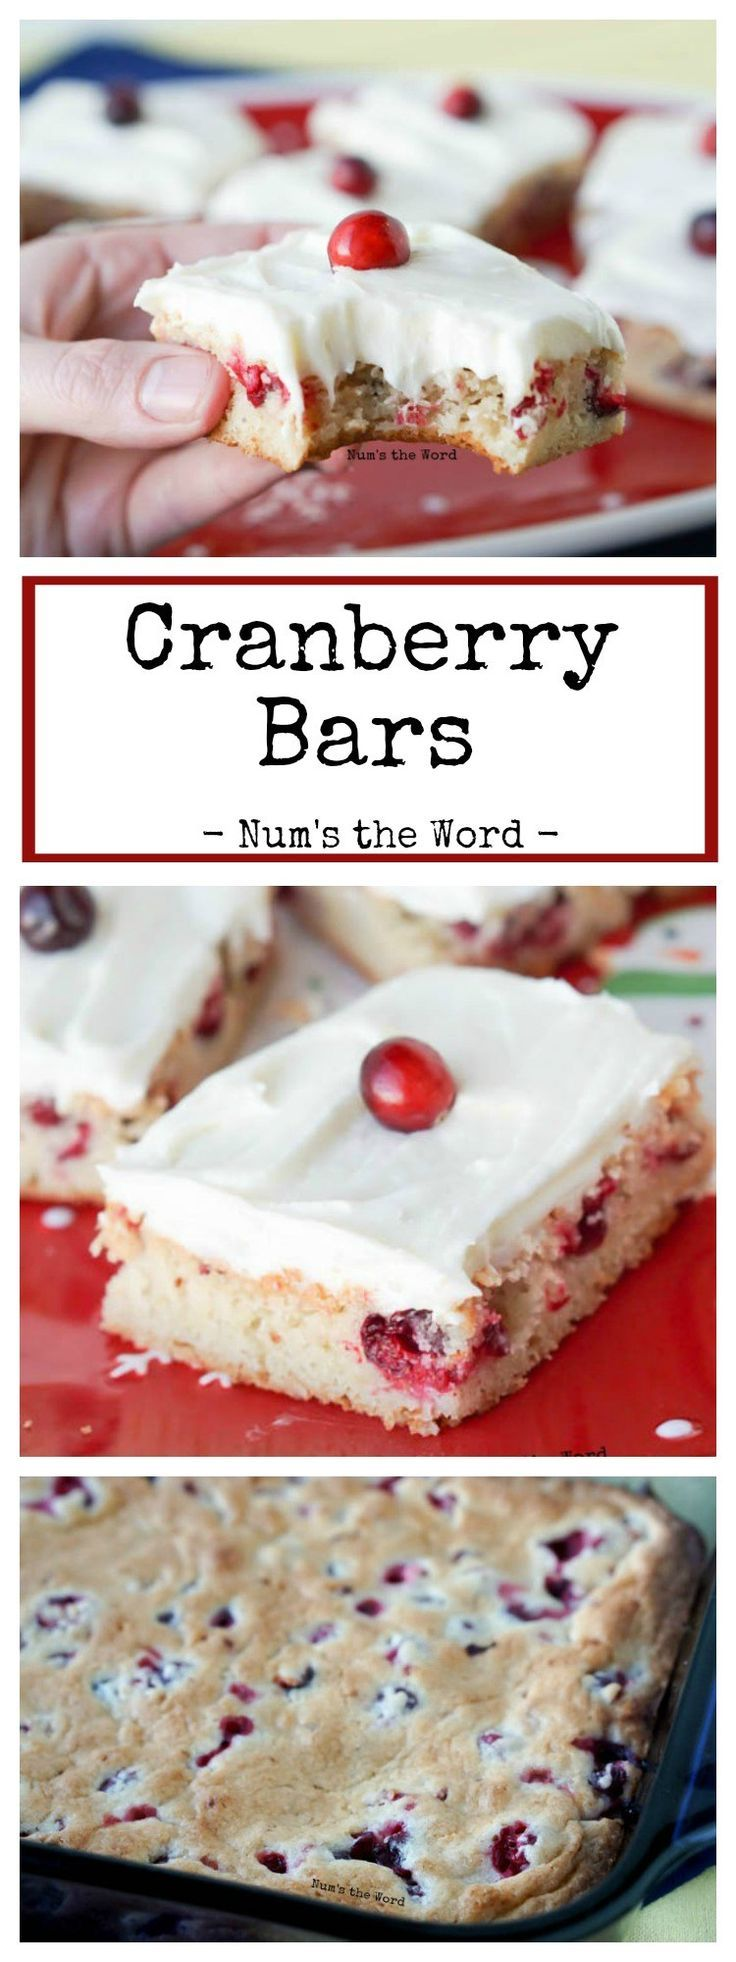 Malvorlagen kirschen pictures to pin on pinterest - Cranberry Bars With Orange Cream Cheese Frosting Are An Easy Beautiful Dessert That Make A